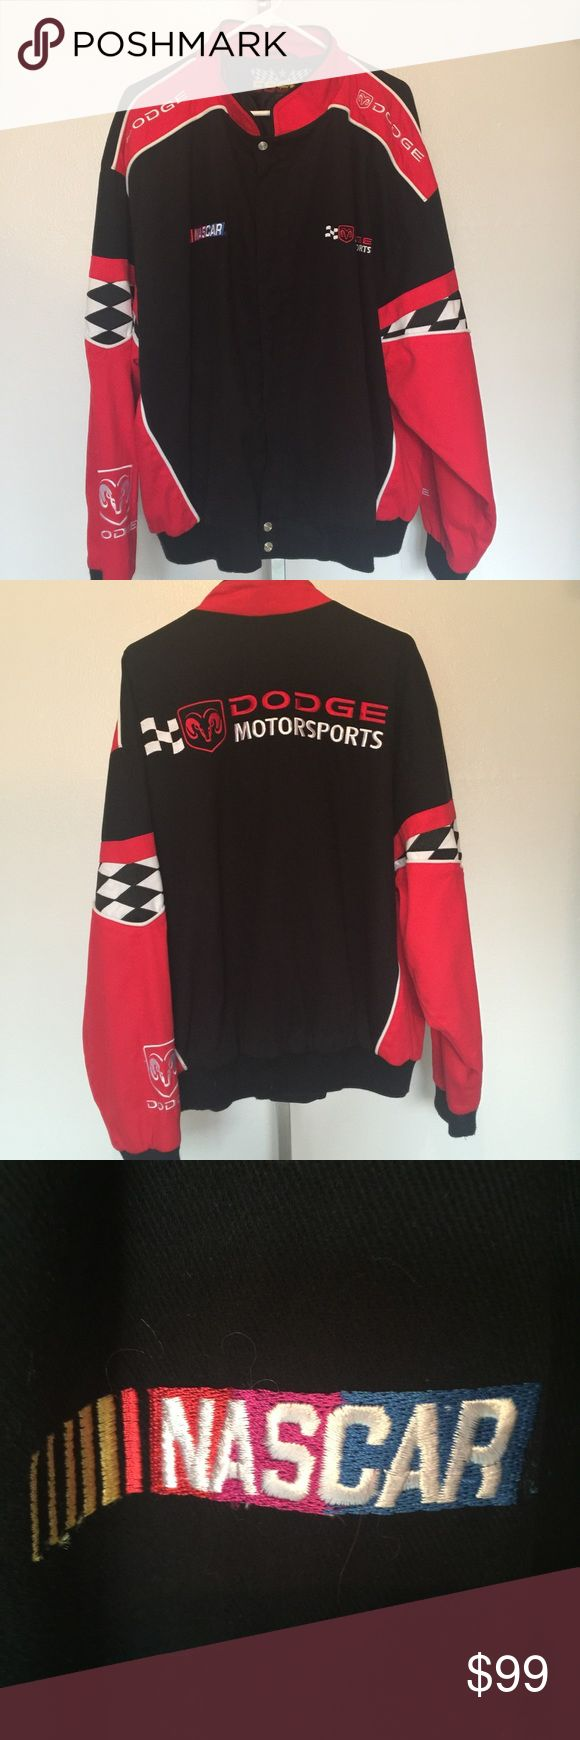 NASCAR jacket (Men's).  NWOT Men's XL NASCAR jacket, Cotton exterior, polyester lined. Brand new, never used. Gifted to my husband but it was too big. Essex Jackets & Coats Bomber & Varsity